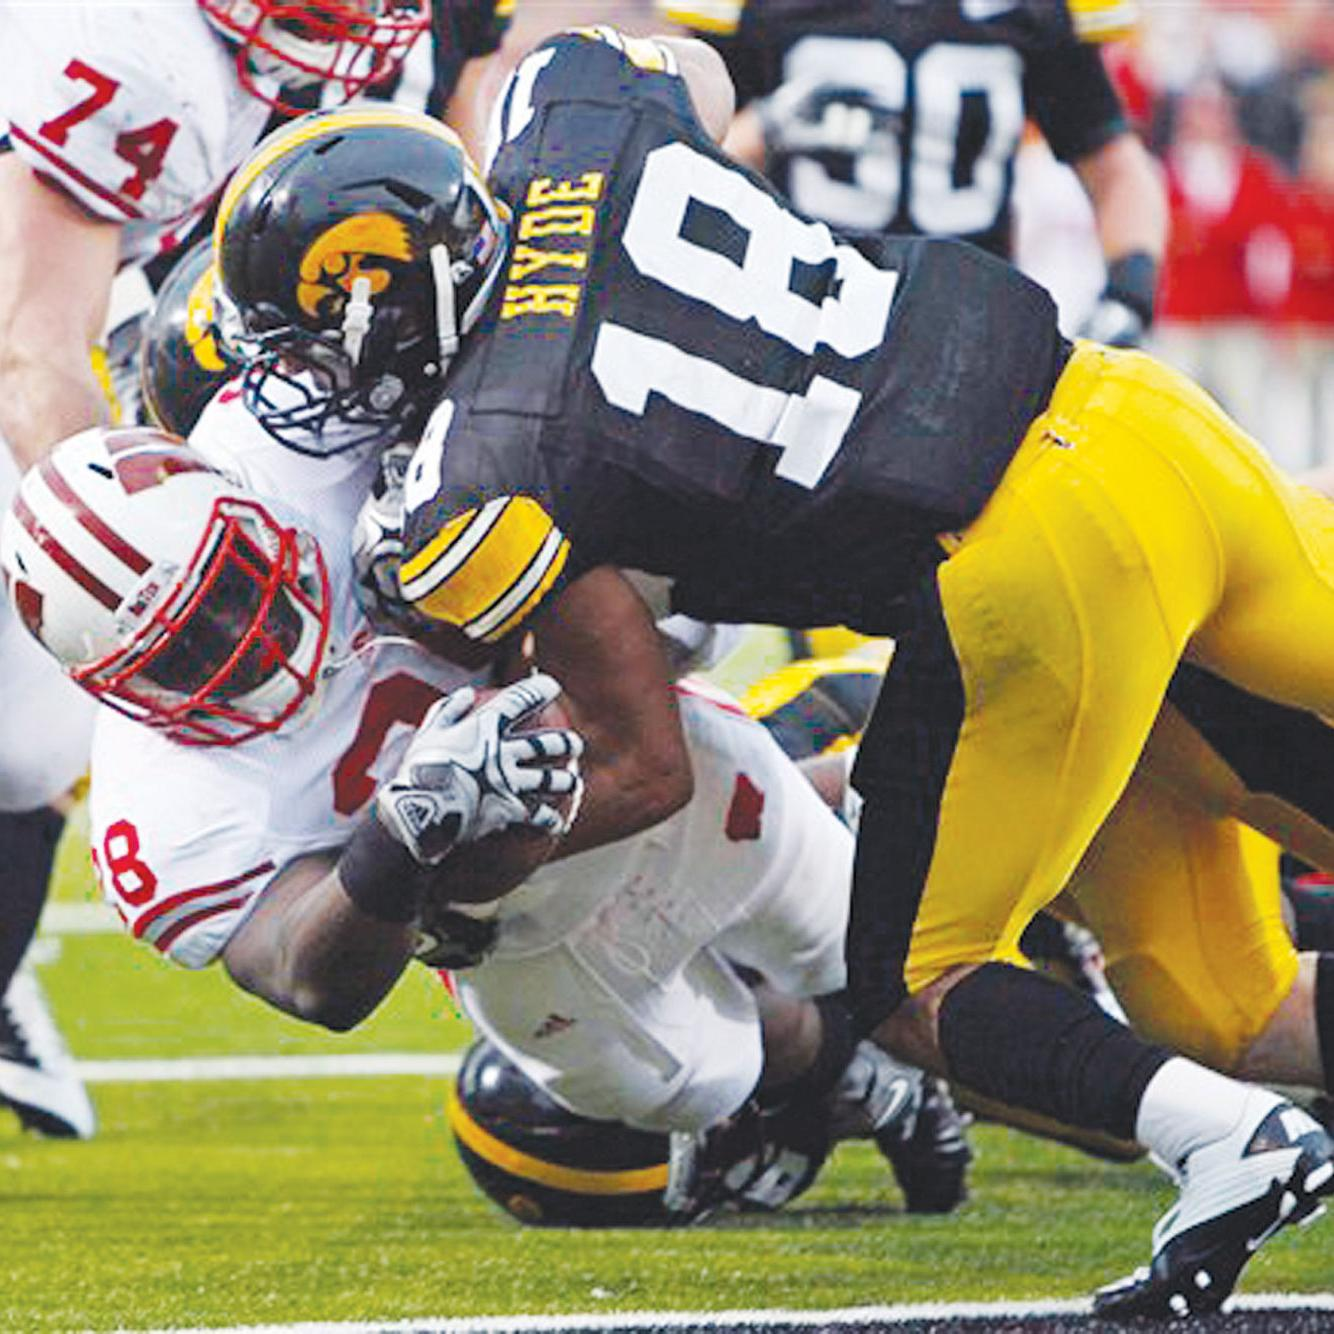 low priced 470dc 1be9c College football: Fake punt lifts Wisconsin over Iowa ...